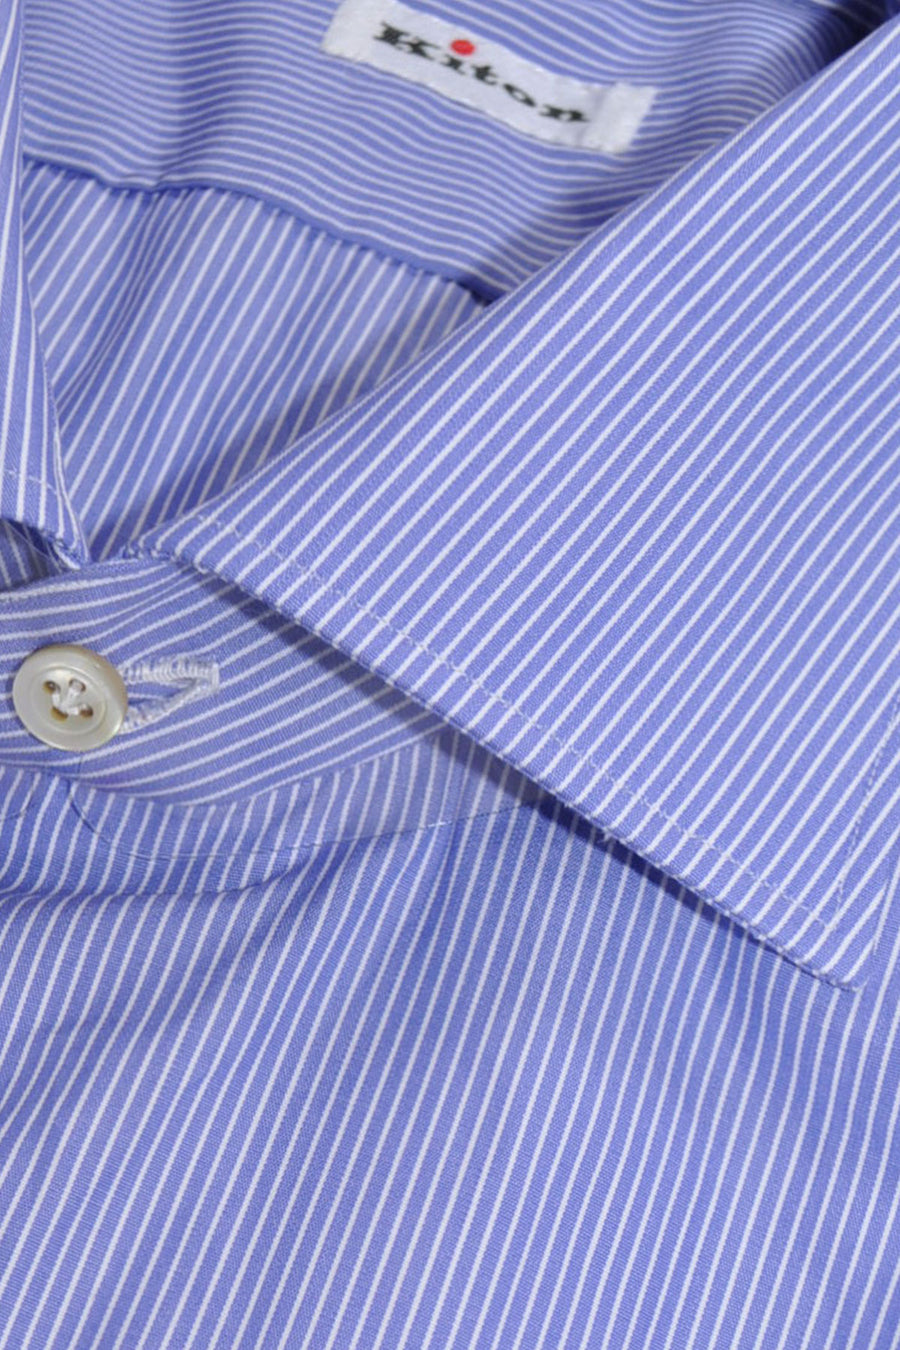 Kiton Dress Shirt Periwinkle Blue